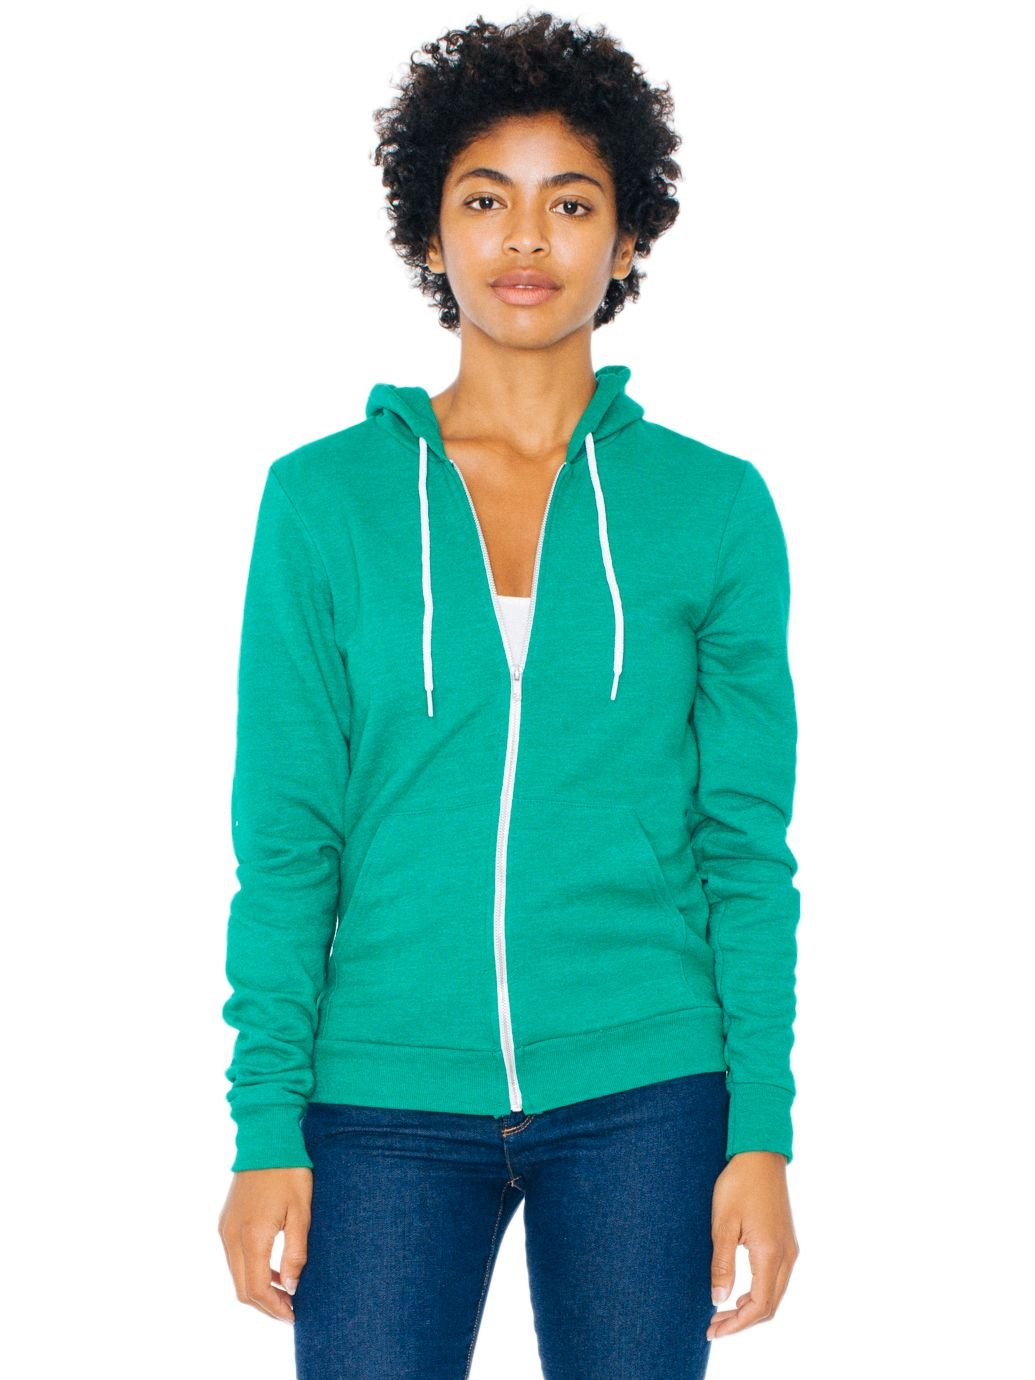 American Apparel Unisex Tri-Blend Hoodie - Tri-Vintage Green / XL by American Apparel